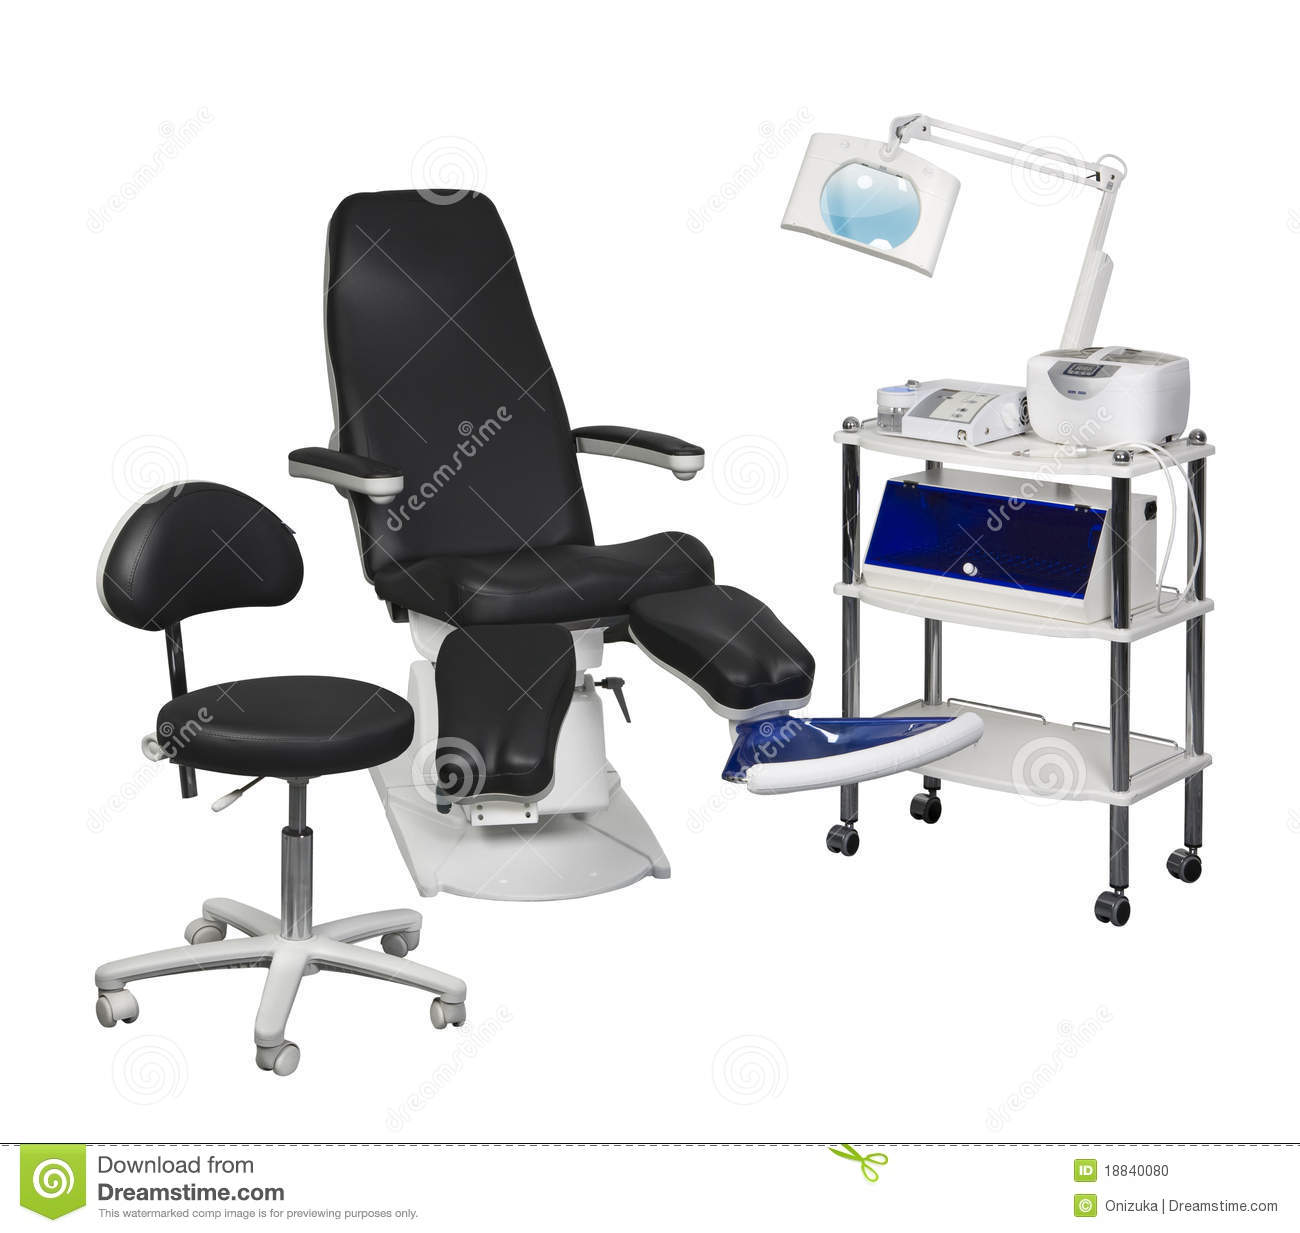 Pedicure Equipment Stock Photo - Image: 18840080